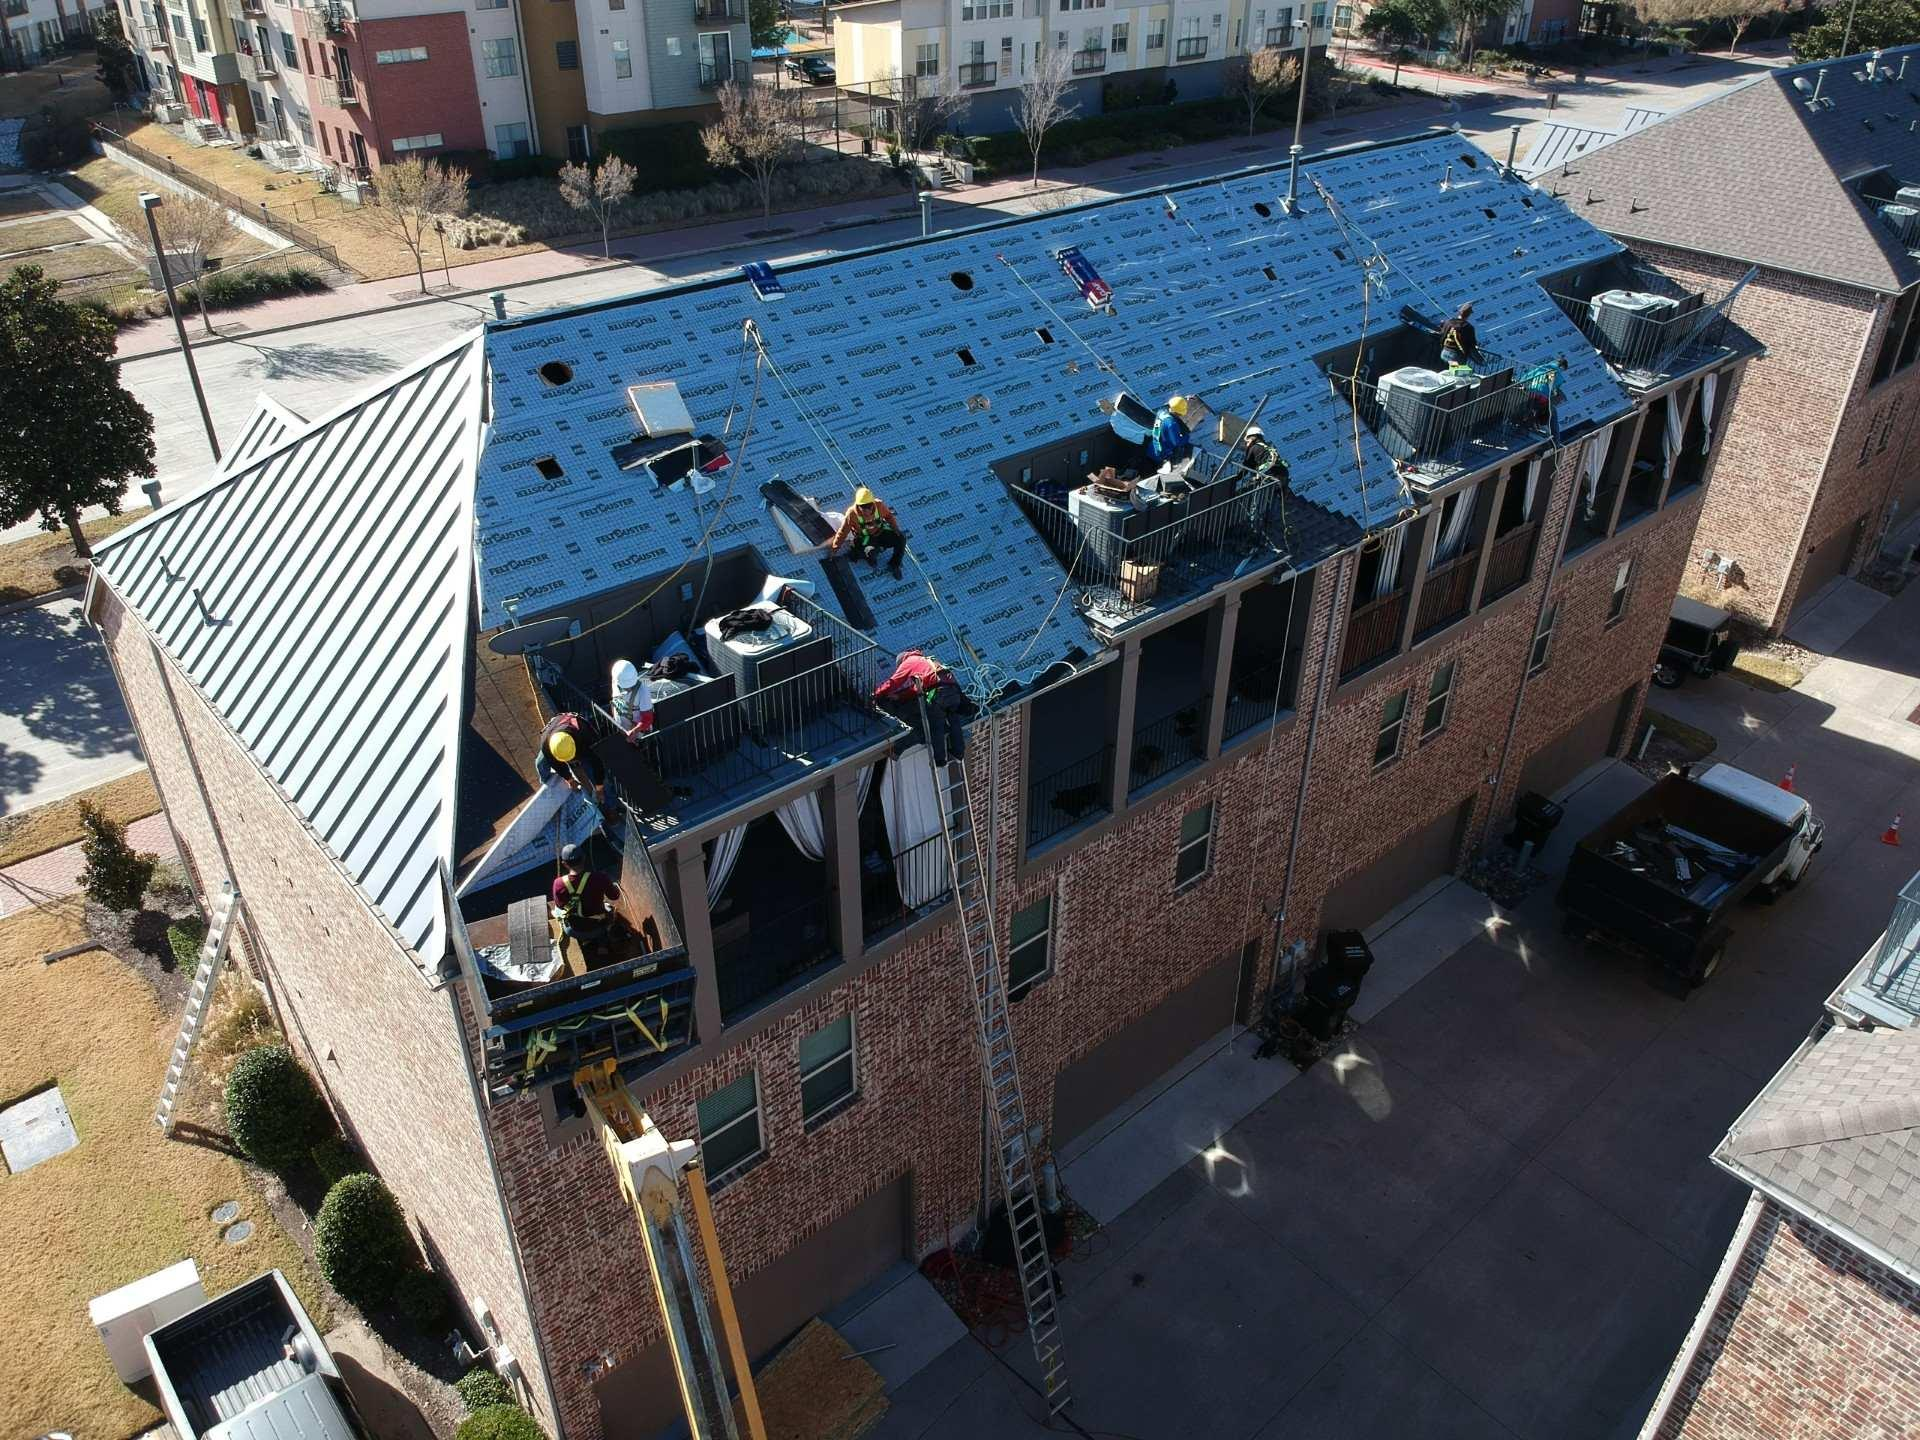 Elite Roofing Company Offers Residential And Commercial Roofing Solutions In Garland, Texas 4